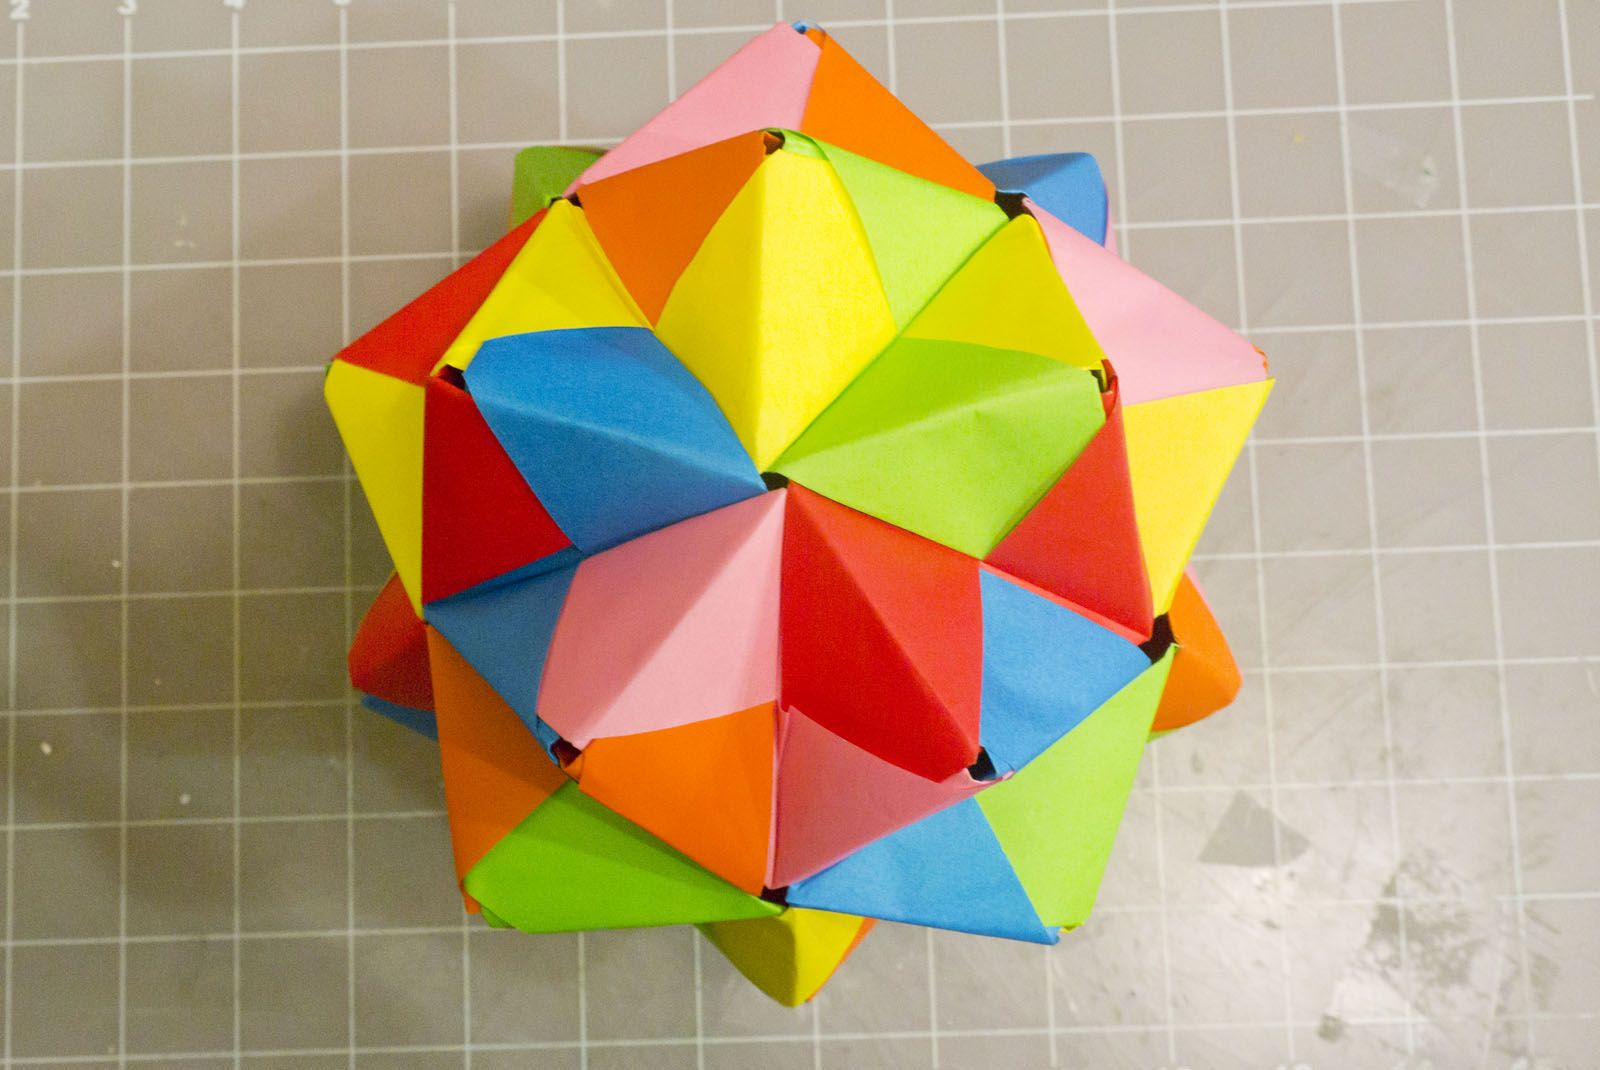 Modular origami how to make a cube octahedron icosahedron from modular origami how to make a cube octahedron icosahedron from sonobe units jeuxipadfo Gallery